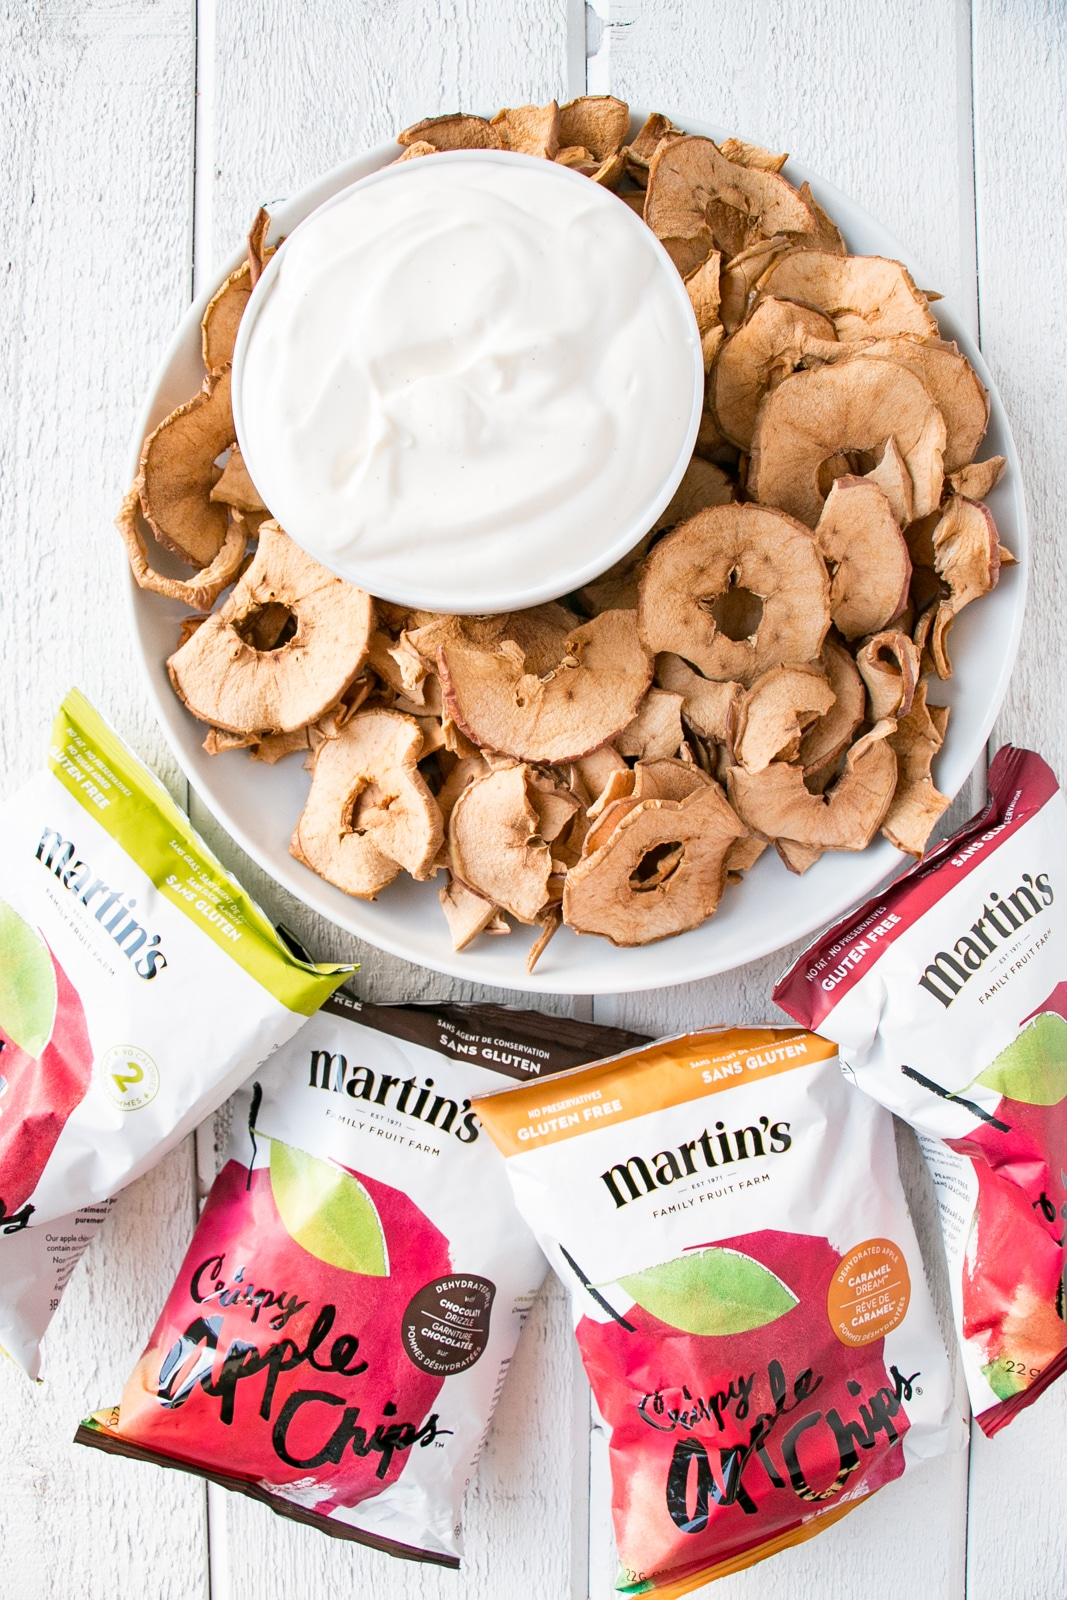 Apple Chips with a sugar-free Yogurt Dip is a great healthy alternative to the regular chips and dip. Make family night still fun, but more healthy with this Apple Chips and Dip recipe! #healthy #ad